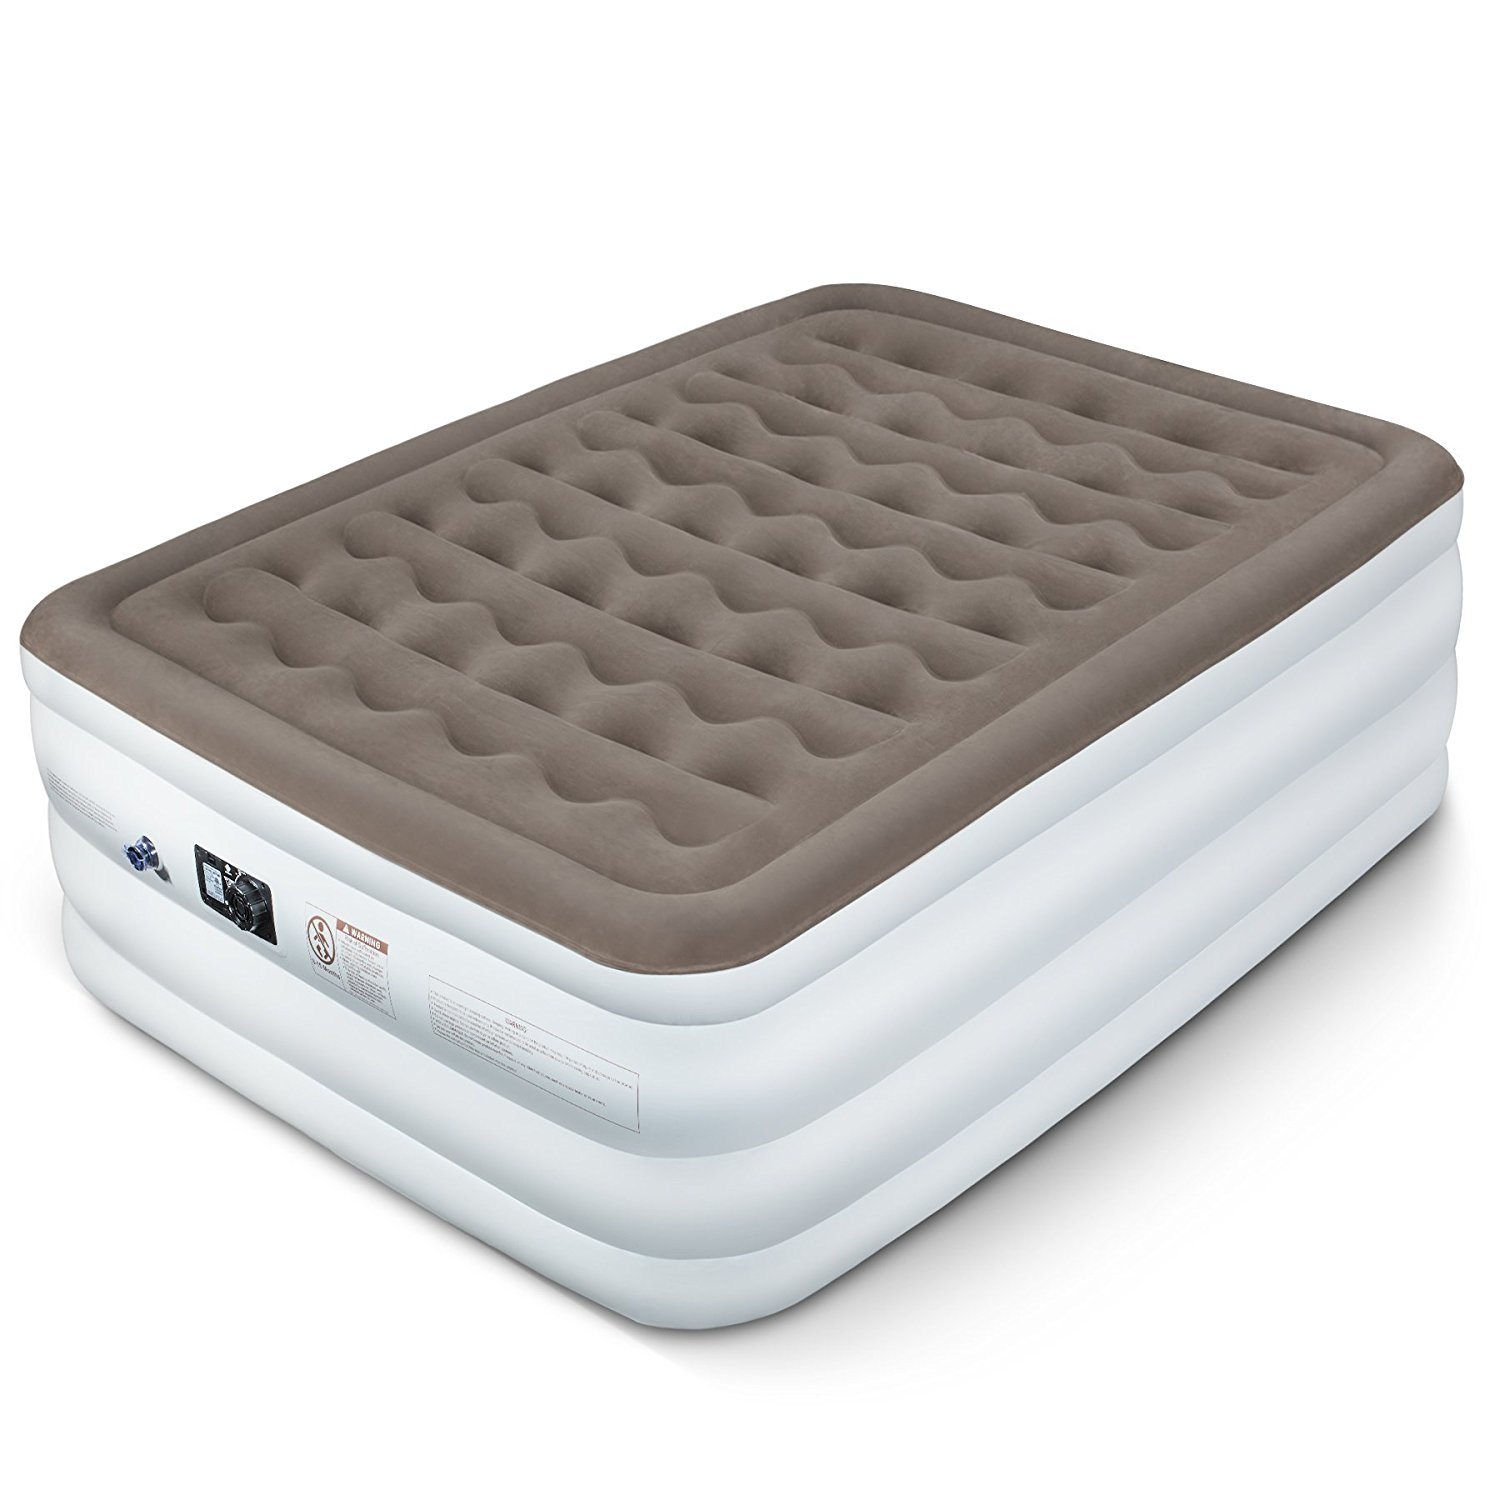 Best air mattress For guest, bedroom and sleepovers